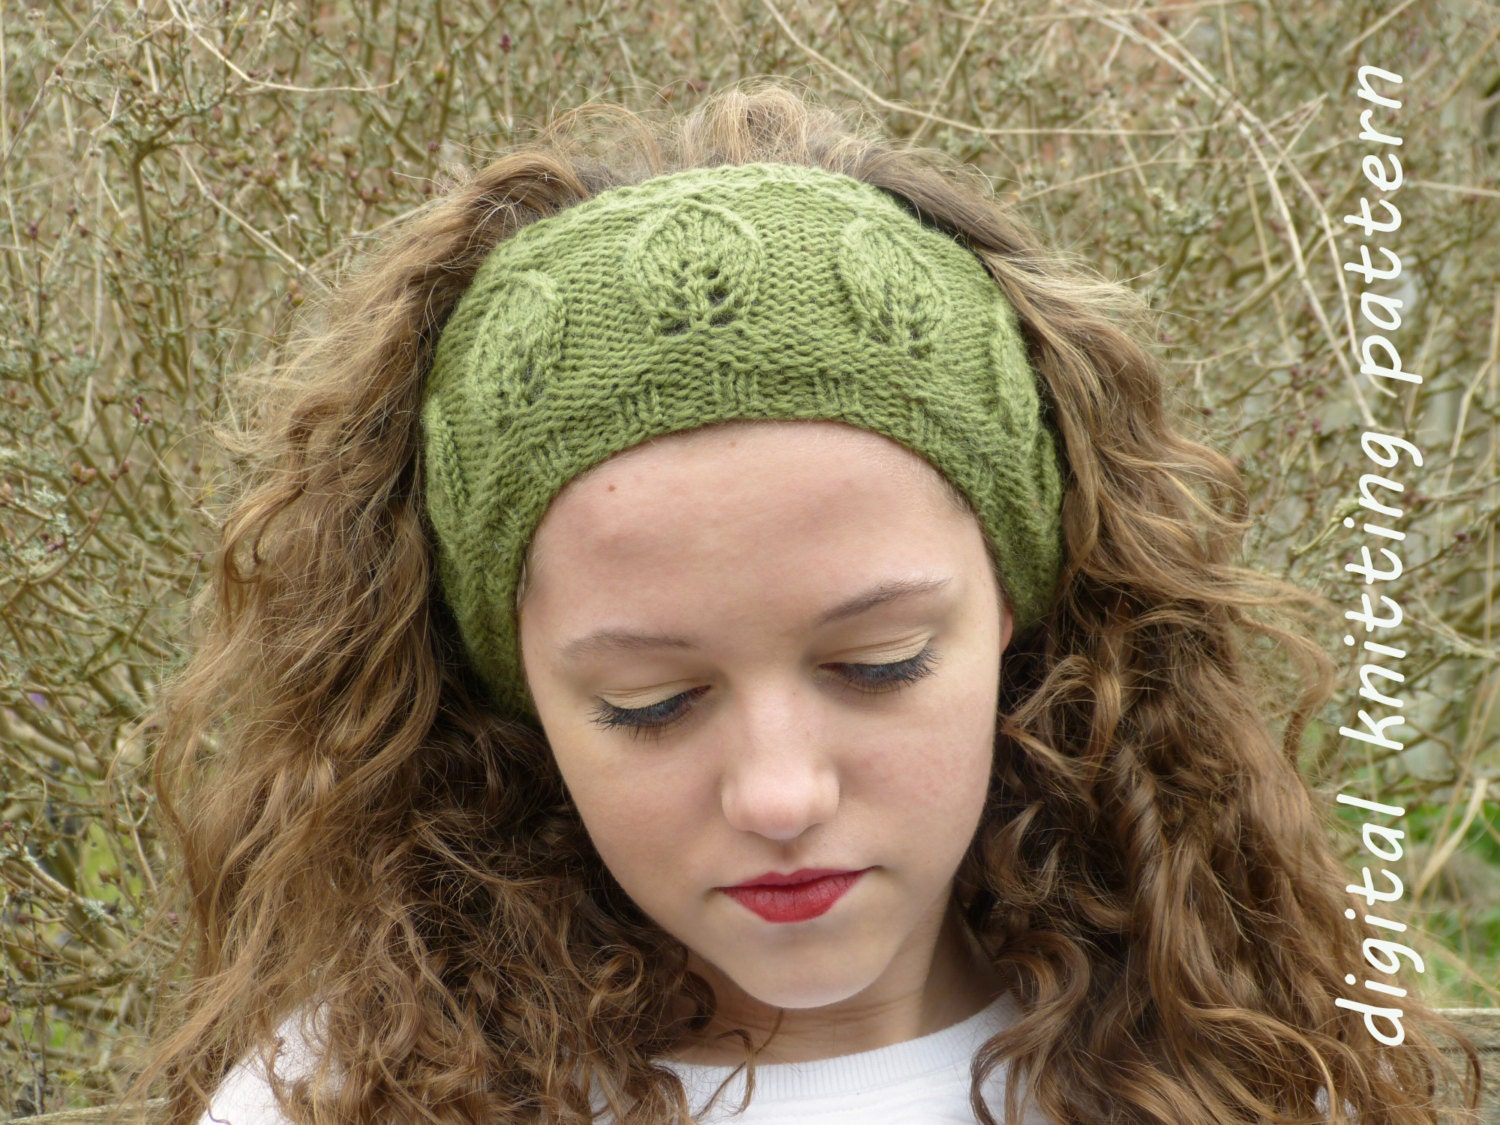 Knit Headband Pattern In The Round : Knitting Pattern PDF Leaf Motif Headband Knit in the Round